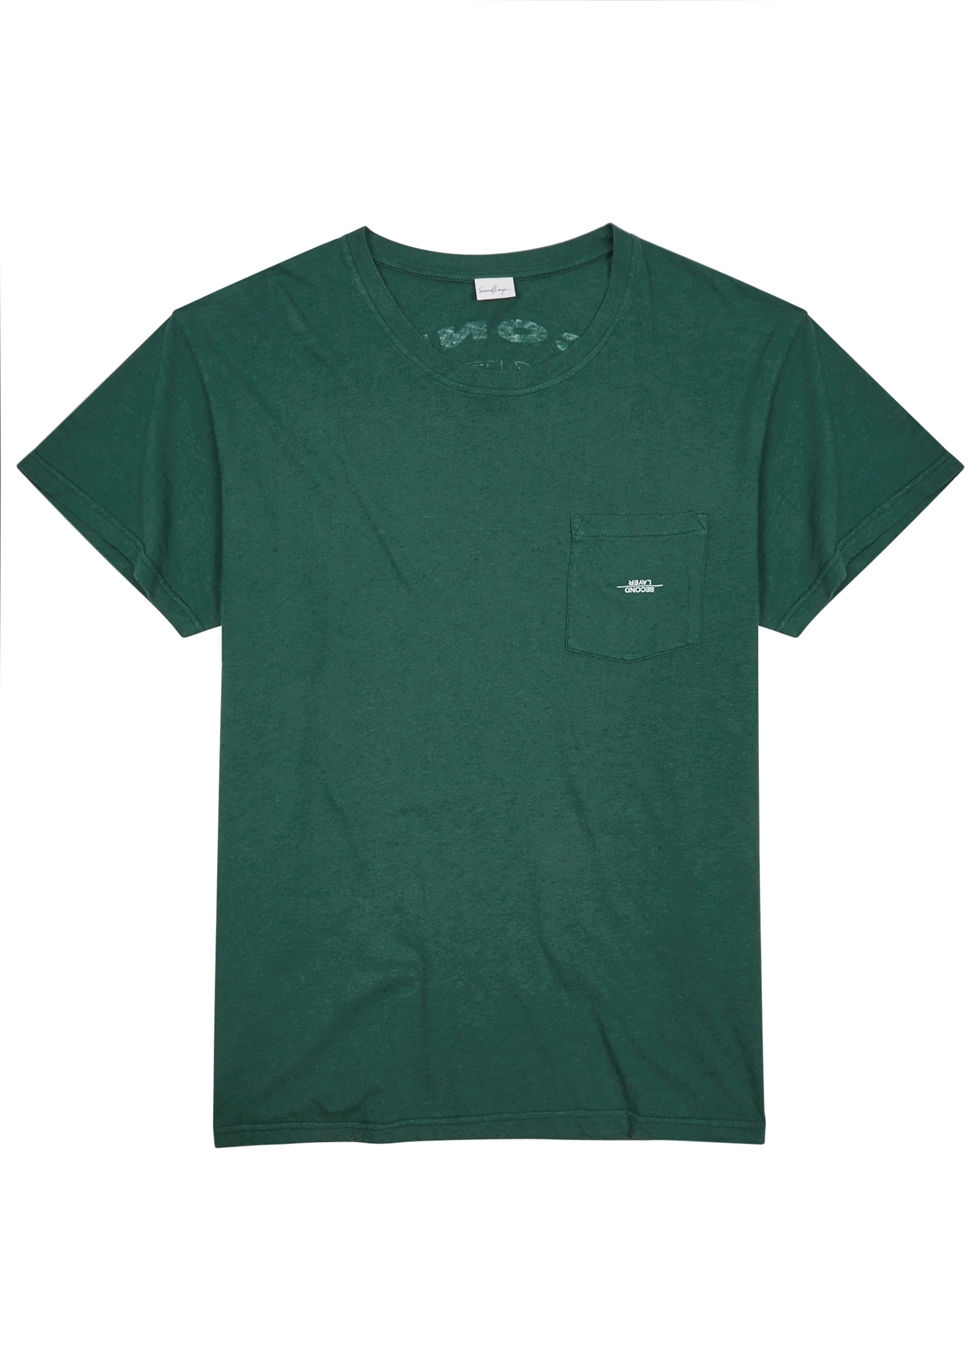 SECOND/LAYER SPIRAL GREEN LOGO-PRINT T-SHIRT